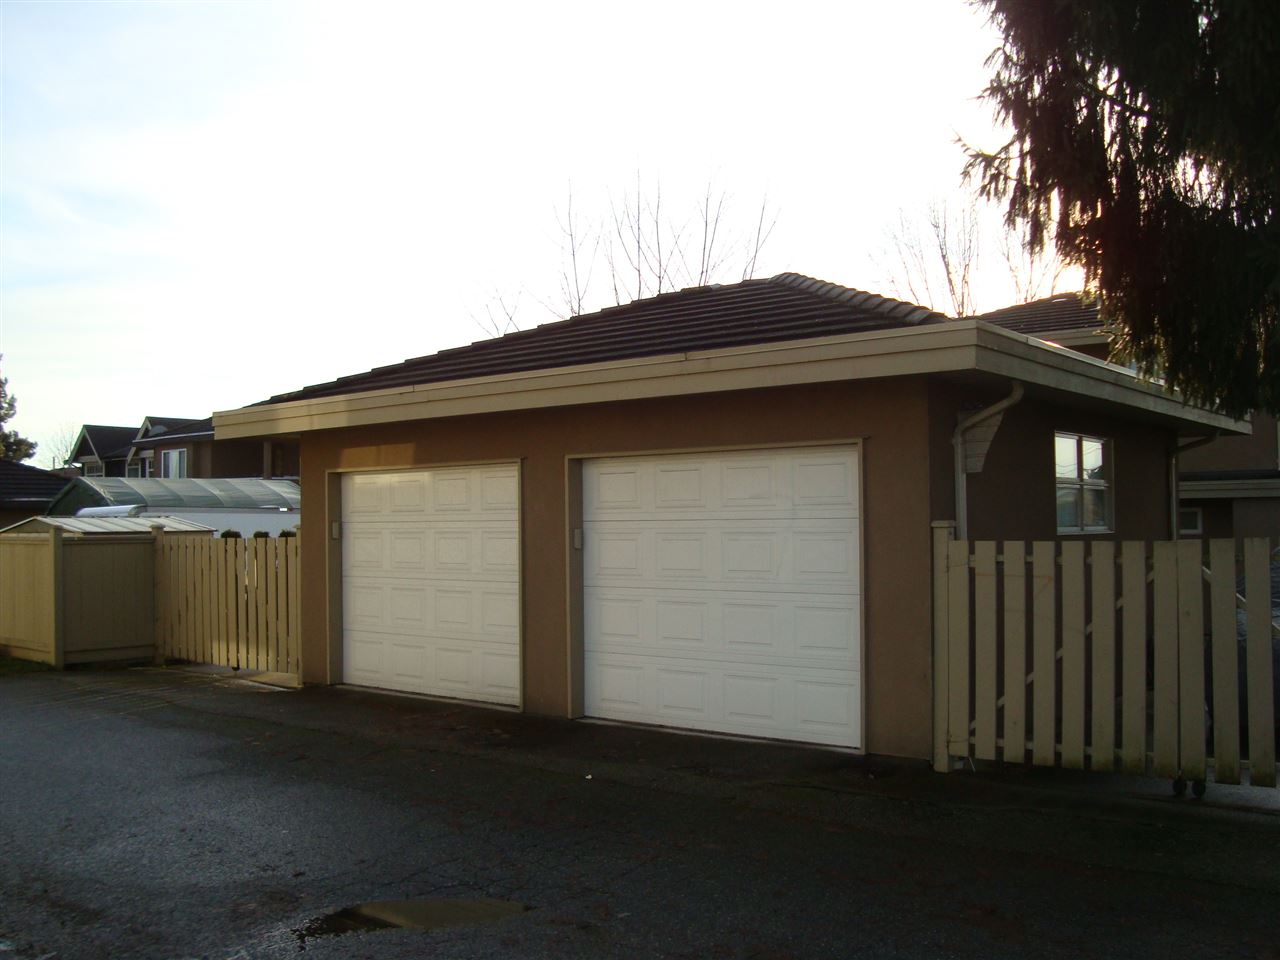 Photo 14: 7562 16TH Avenue in Burnaby: Edmonds BE House 1/2 Duplex for sale (Burnaby East)  : MLS® # R2022922